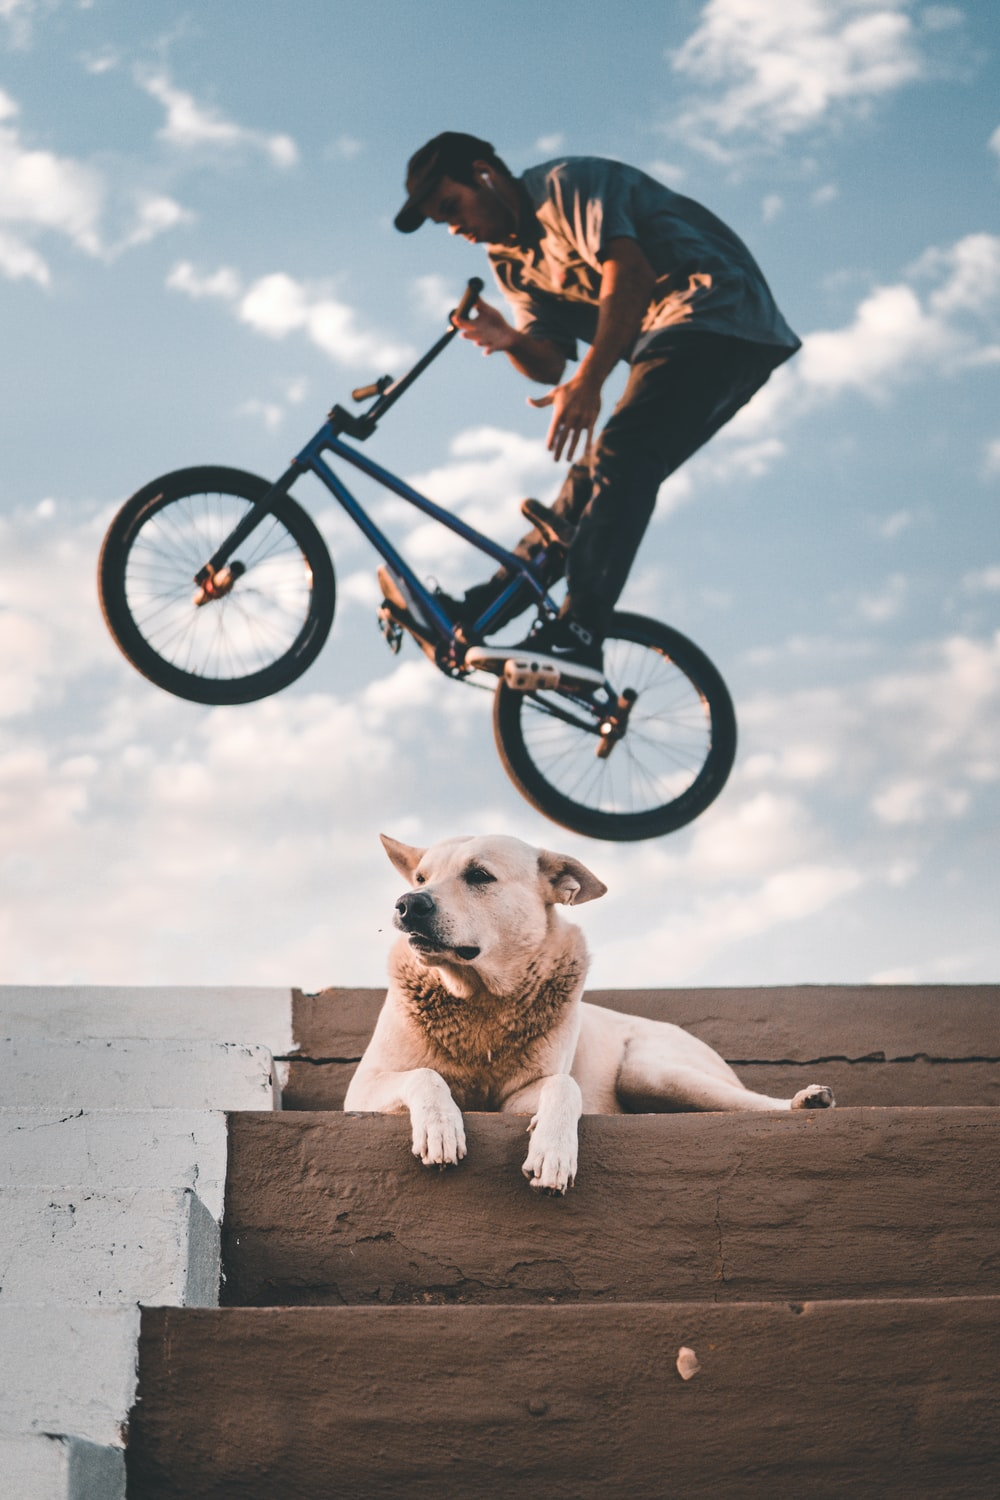 Best BMX Bikes 2020 | Best Products Review, Buying Guide & Much More